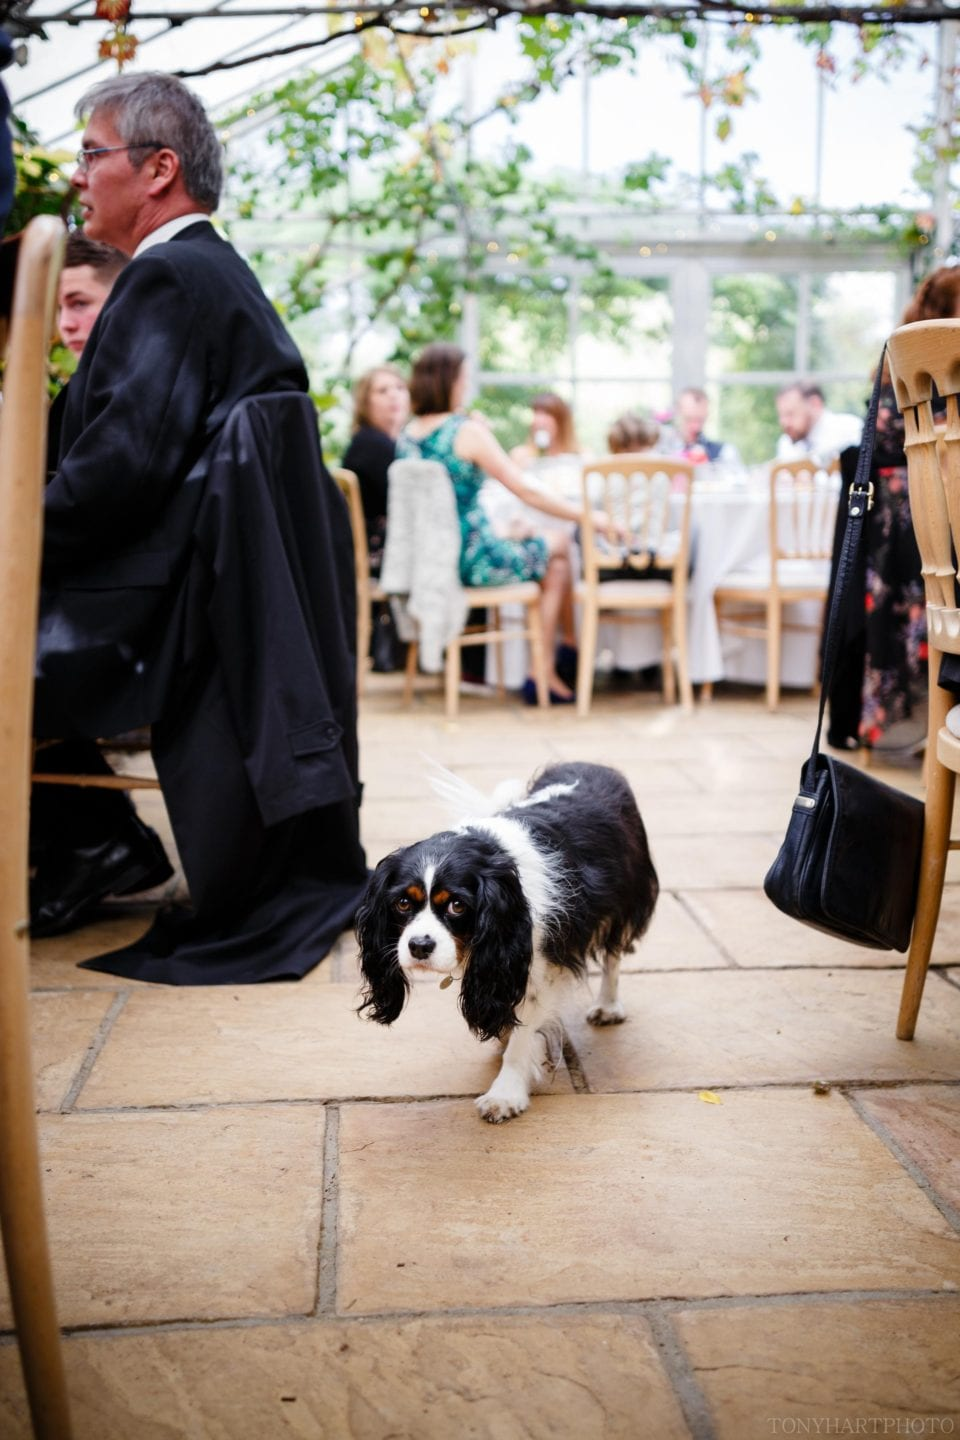 Sweetpea the King Charles Spaniel on the prowl for dropped morsels during Emma & Tom's wedding breakfast in the greenhouses at West Green House